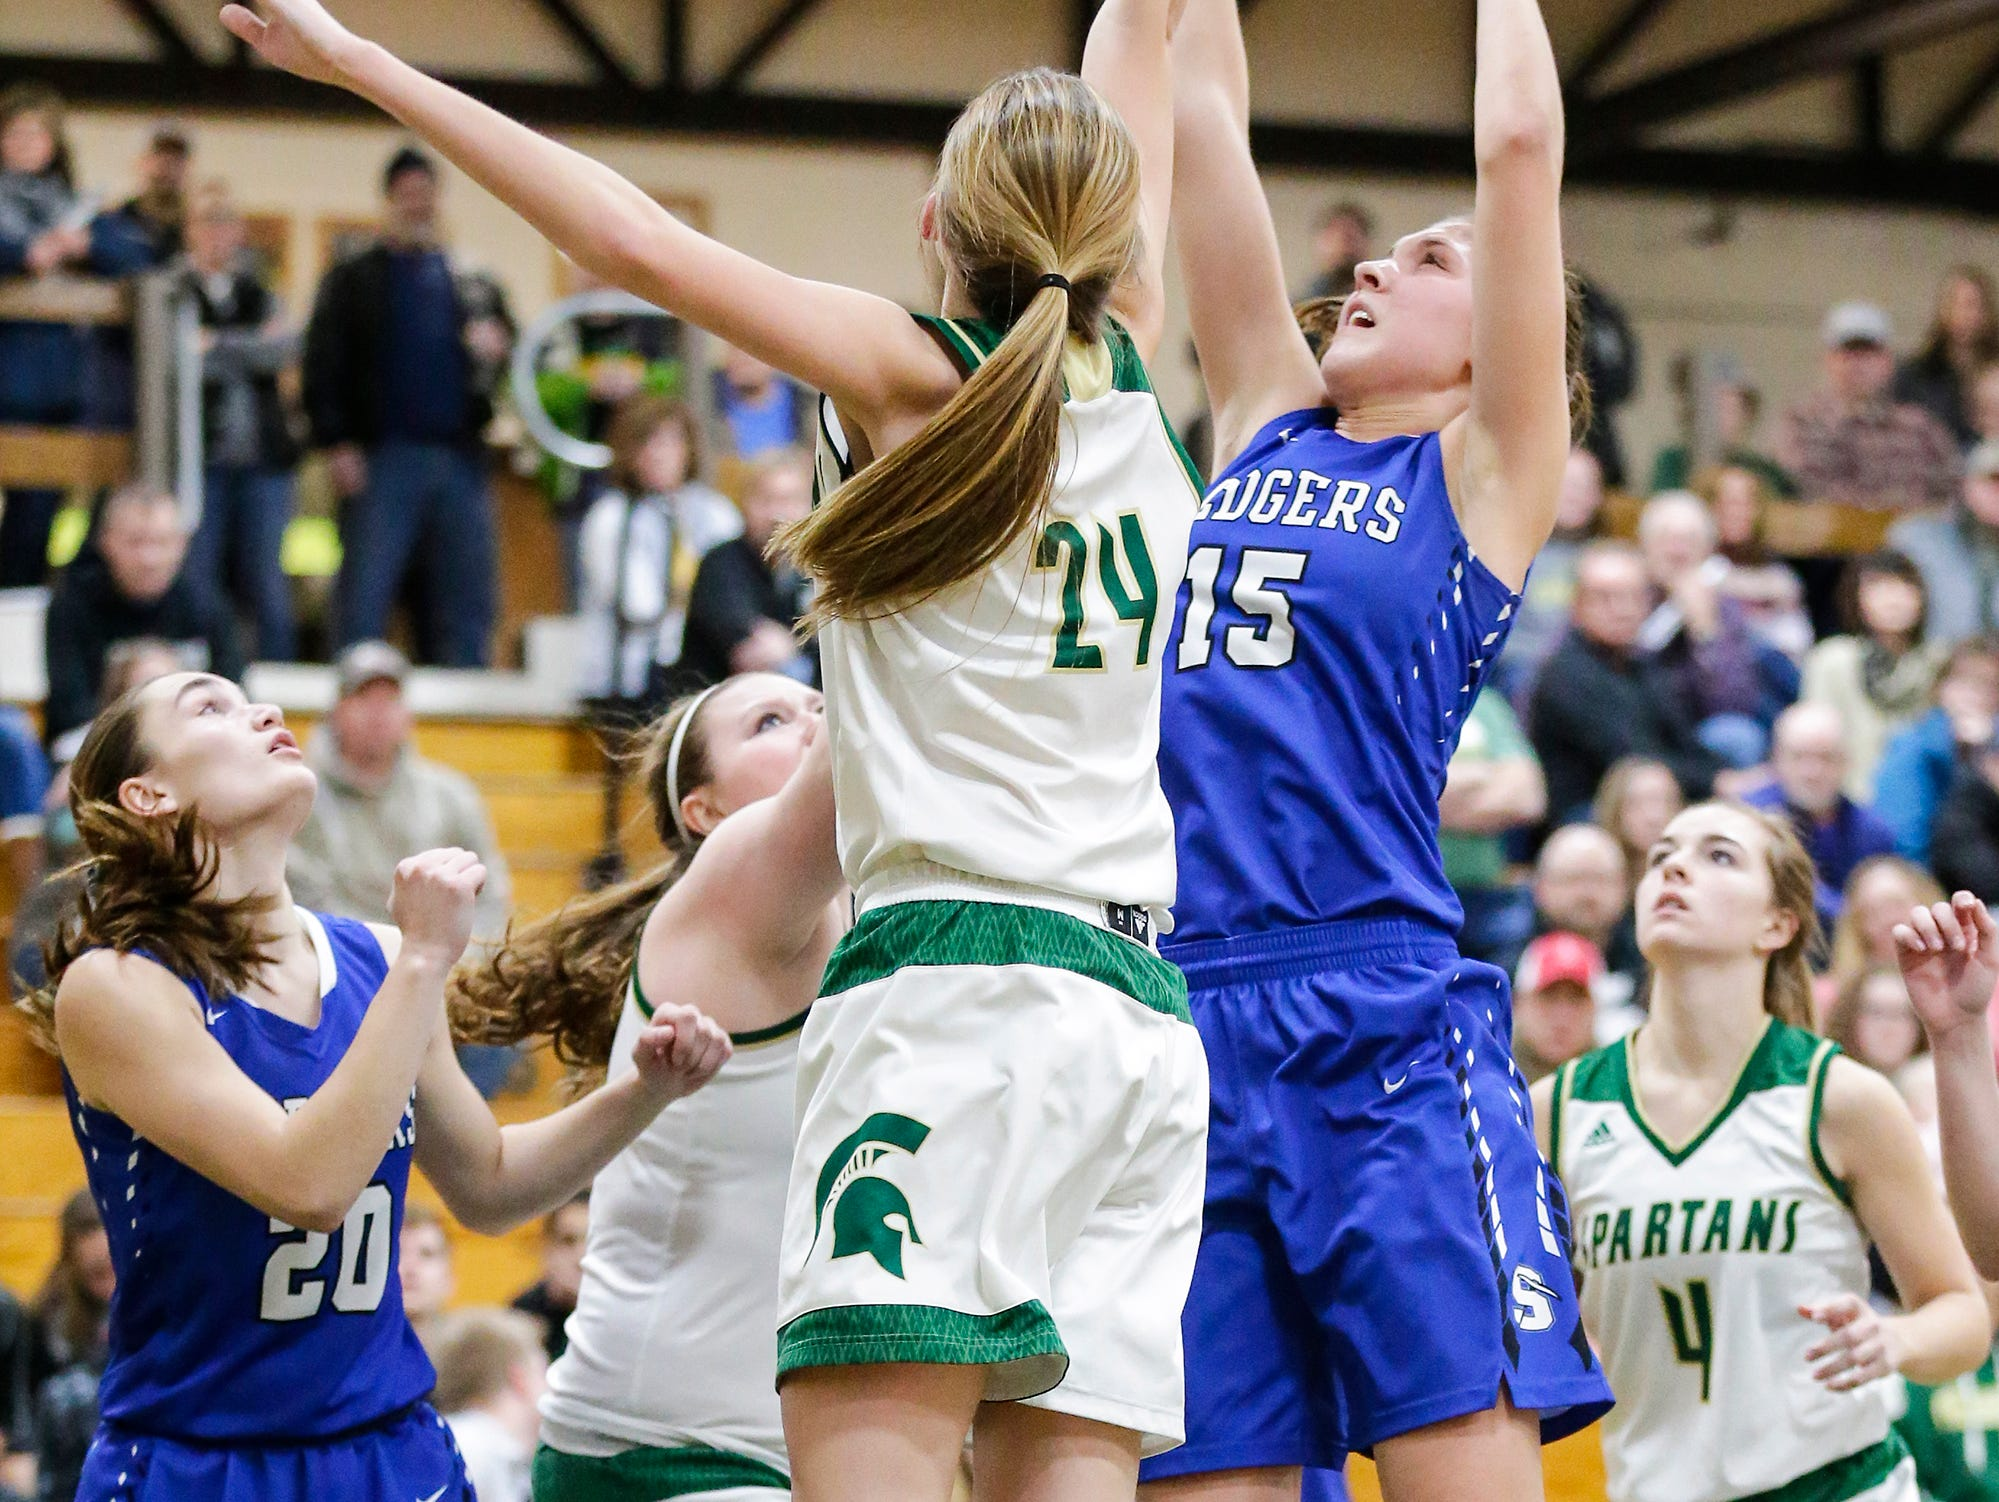 St. Mary's Springs Academy girls basketball's Maddie Gehring goes up for a basket against Laconia High School's Maci Grade Tuesday, January 15, 2019 during their game in Rosendale. Laconia won the game 57-45. Doug Raflik/USA TODAY NETWORK-Wisconsin